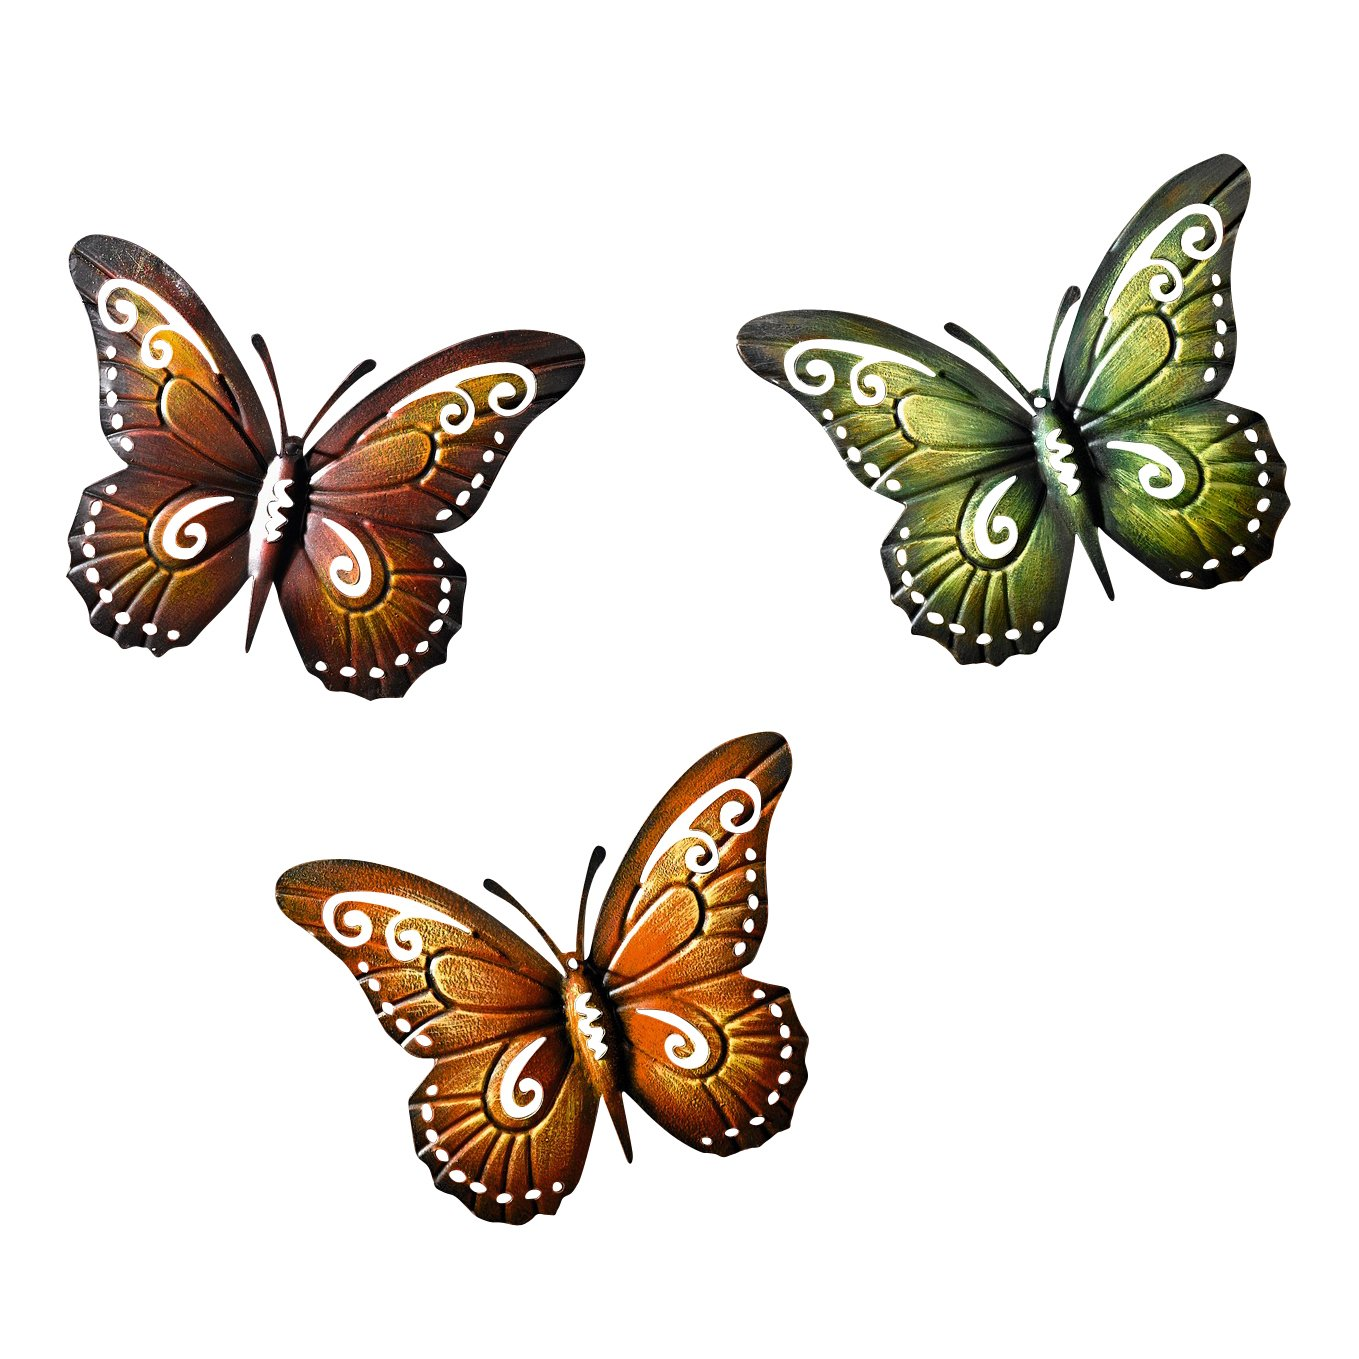 Metal Butterfly Wall Decor - Colored Metal Butterflies, Set of Three Wall Art Product